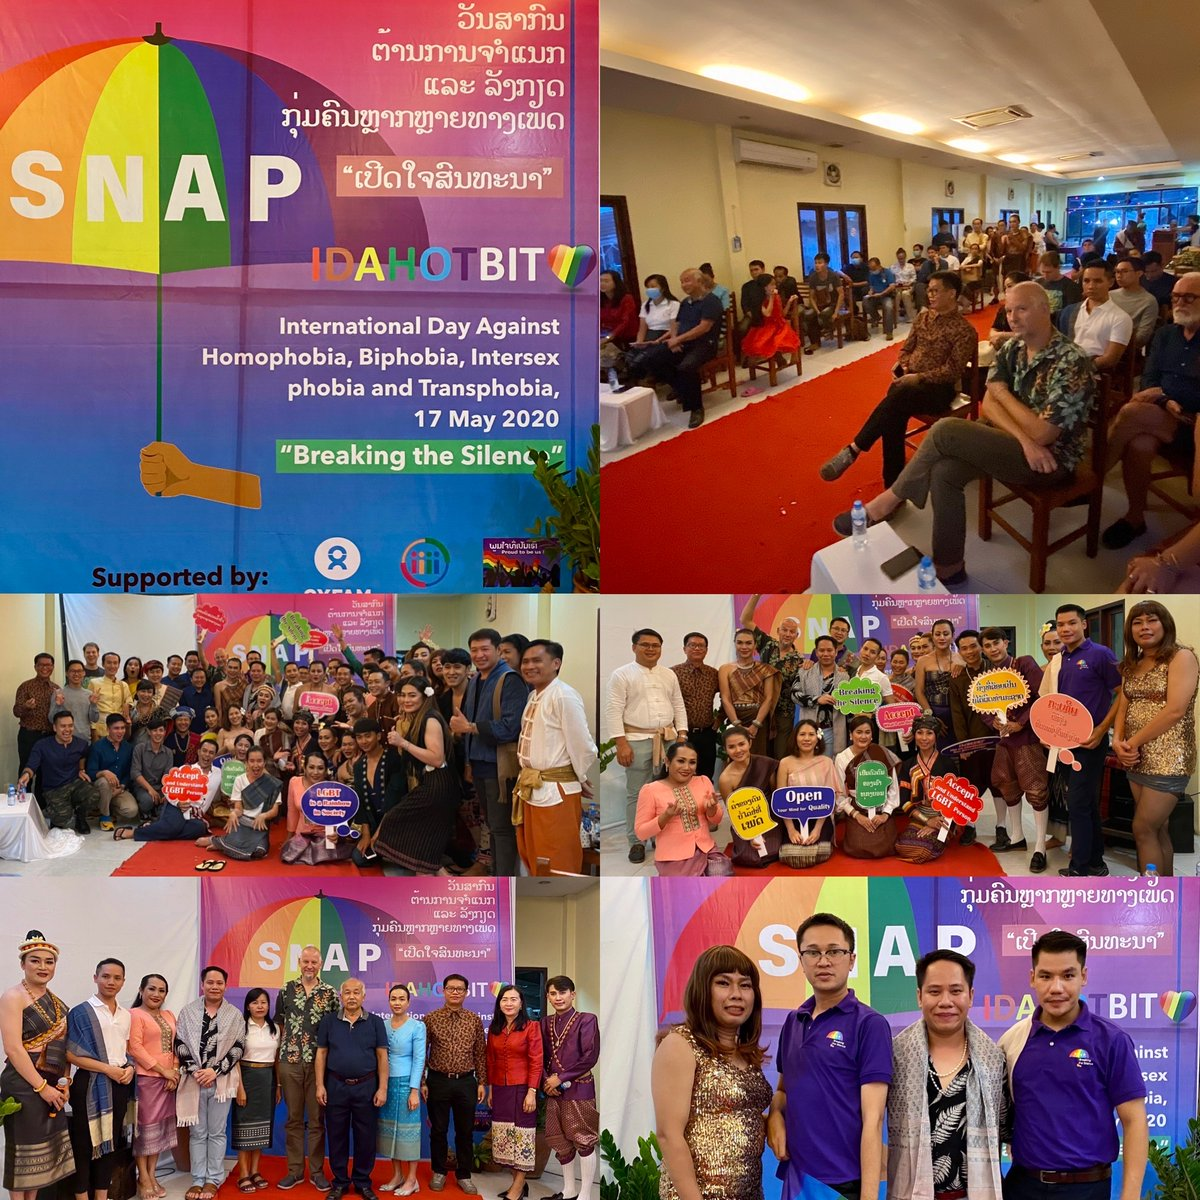 """@Proudtobeuslaos is delighted to jointly organise the first ever #IDAHOBIT Day 2020 in Luang Prabang with CHIAS.  This is a part of """"Strengthening Networks and Advocating for the Promotion of LGBTI Rights"""" Project supported by @Oxfam in Laos.  @CortadaFranc of @OxfamIntermon https://t.co/EENcmHHxxR"""